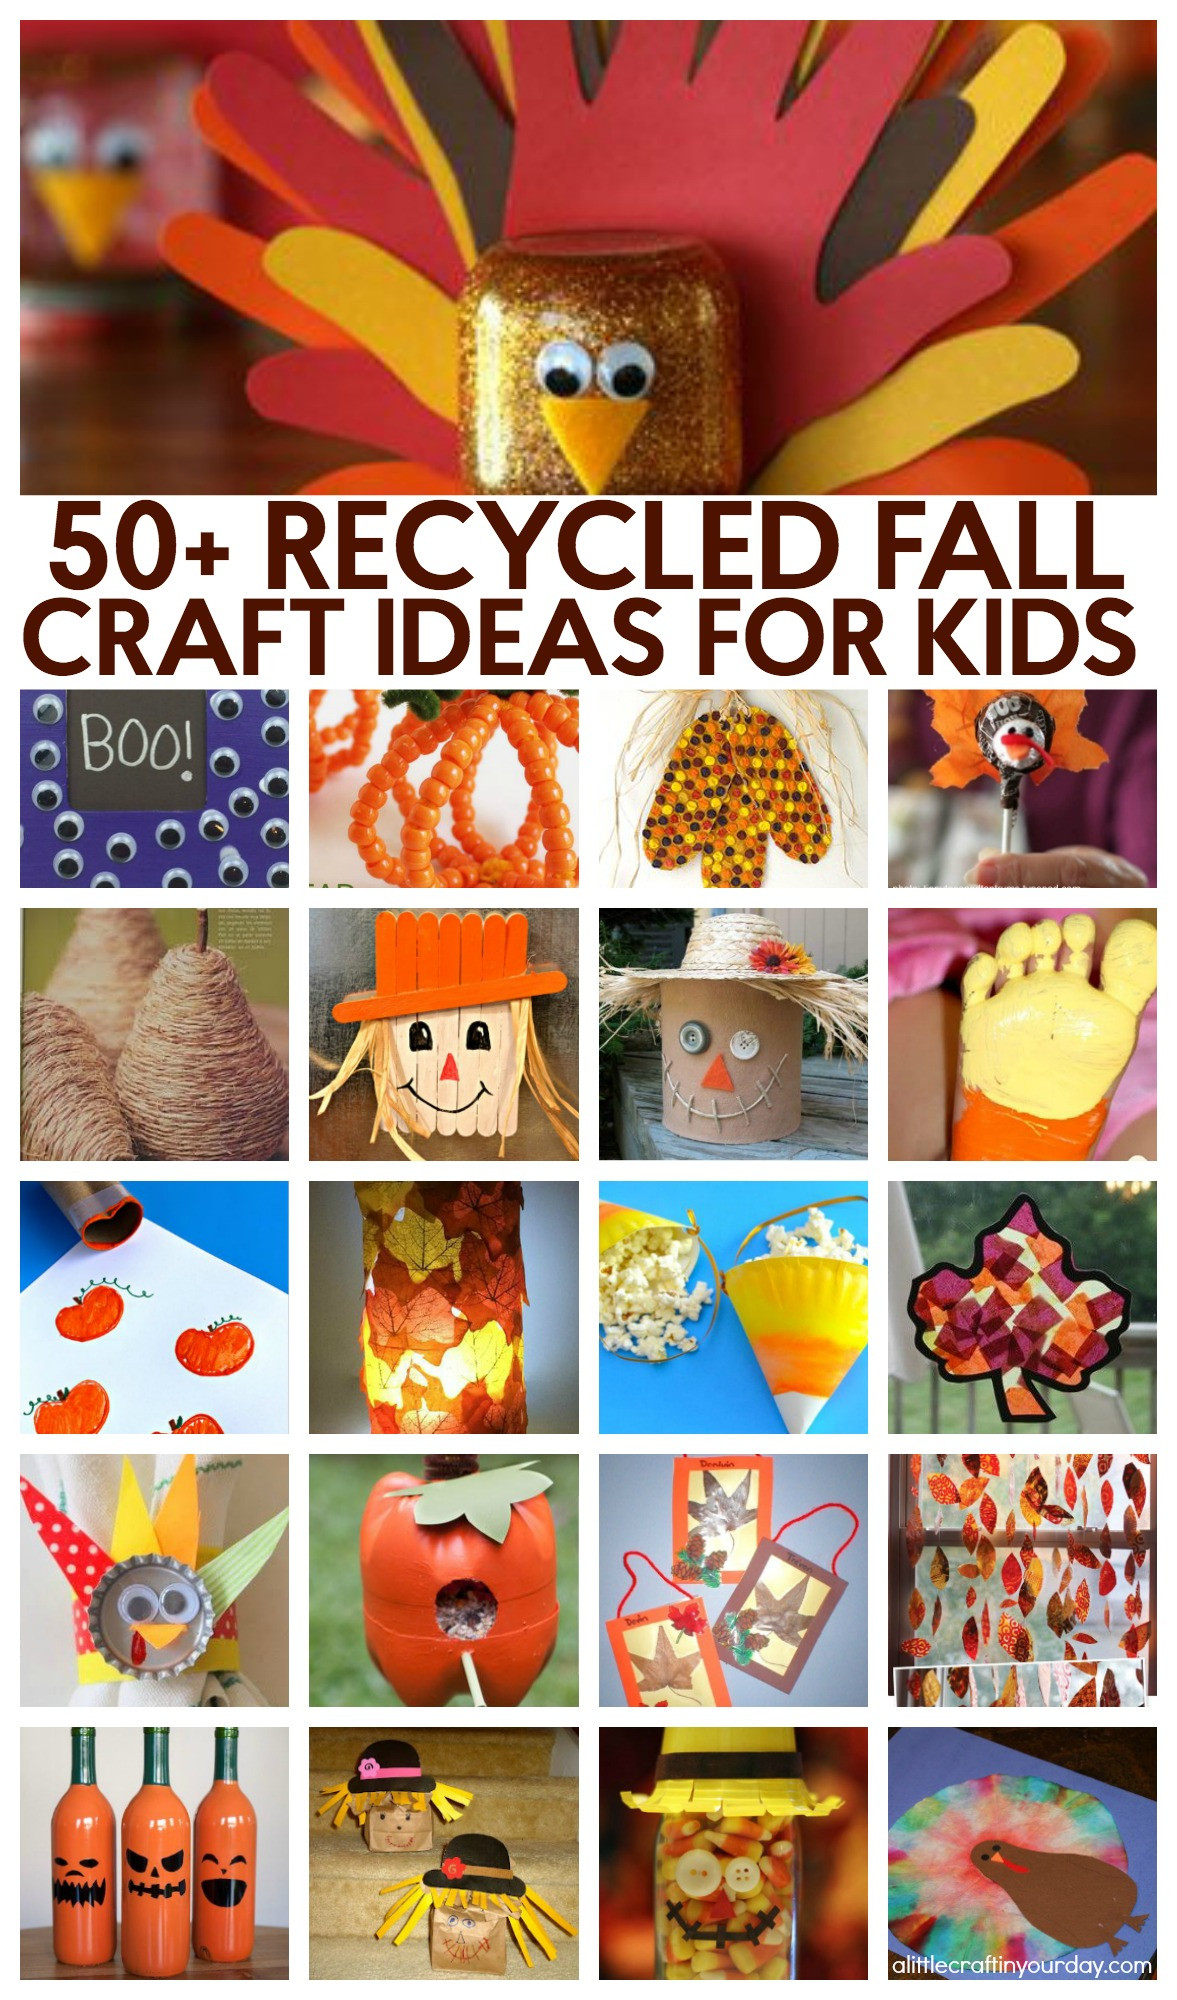 Toddler Craft Project  51 Recycled Fall Kids Crafts A Little Craft In Your DayA